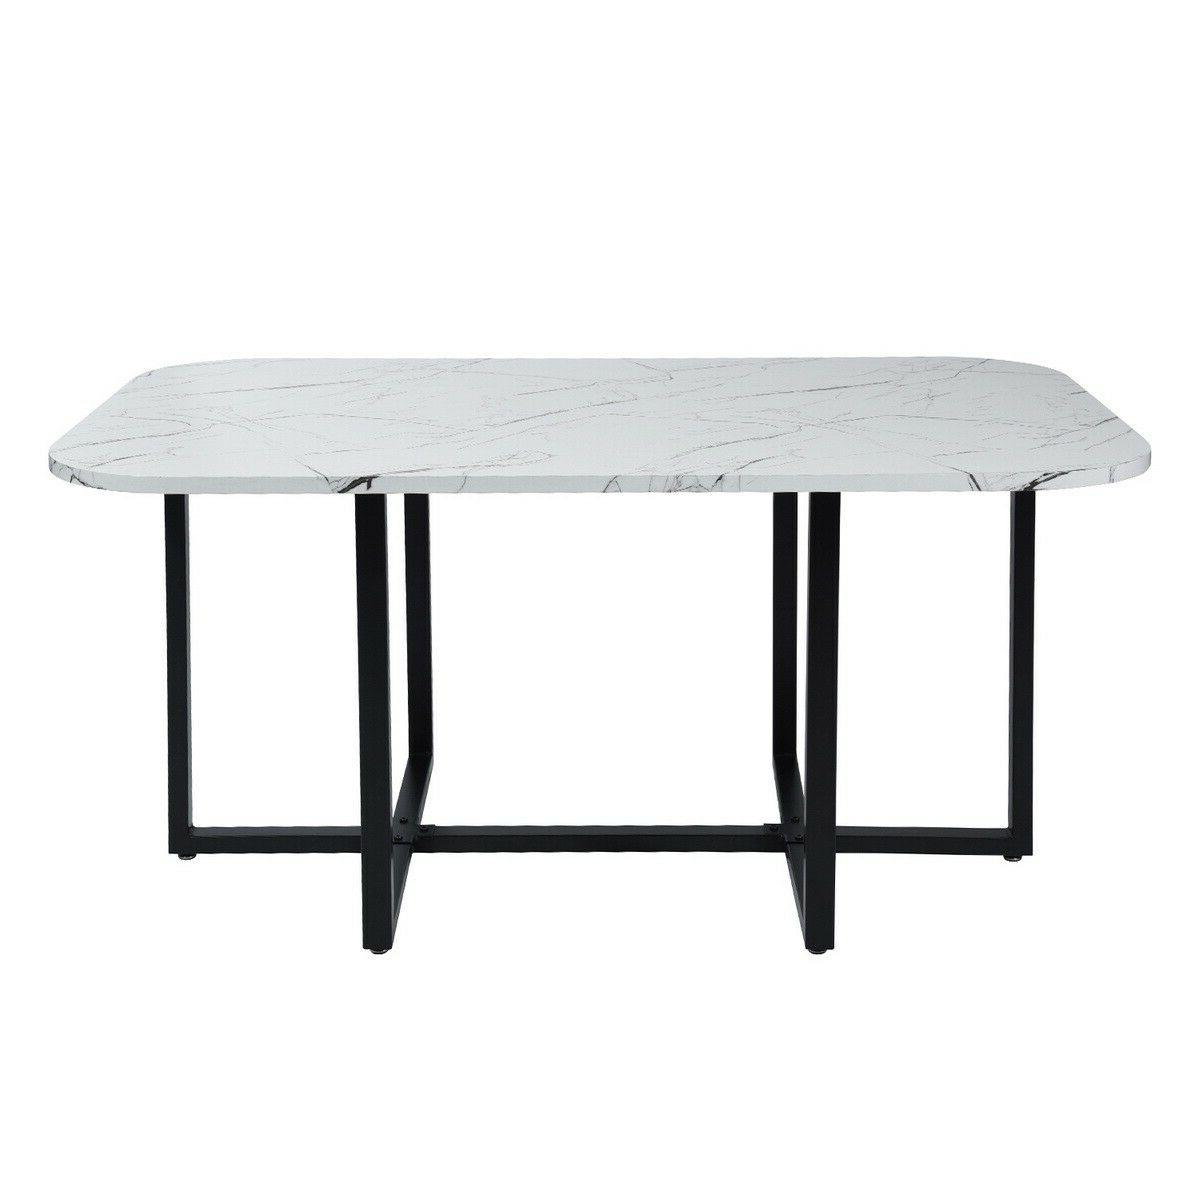 Marble Piece Dining Table Set Leather Chairs Dinner